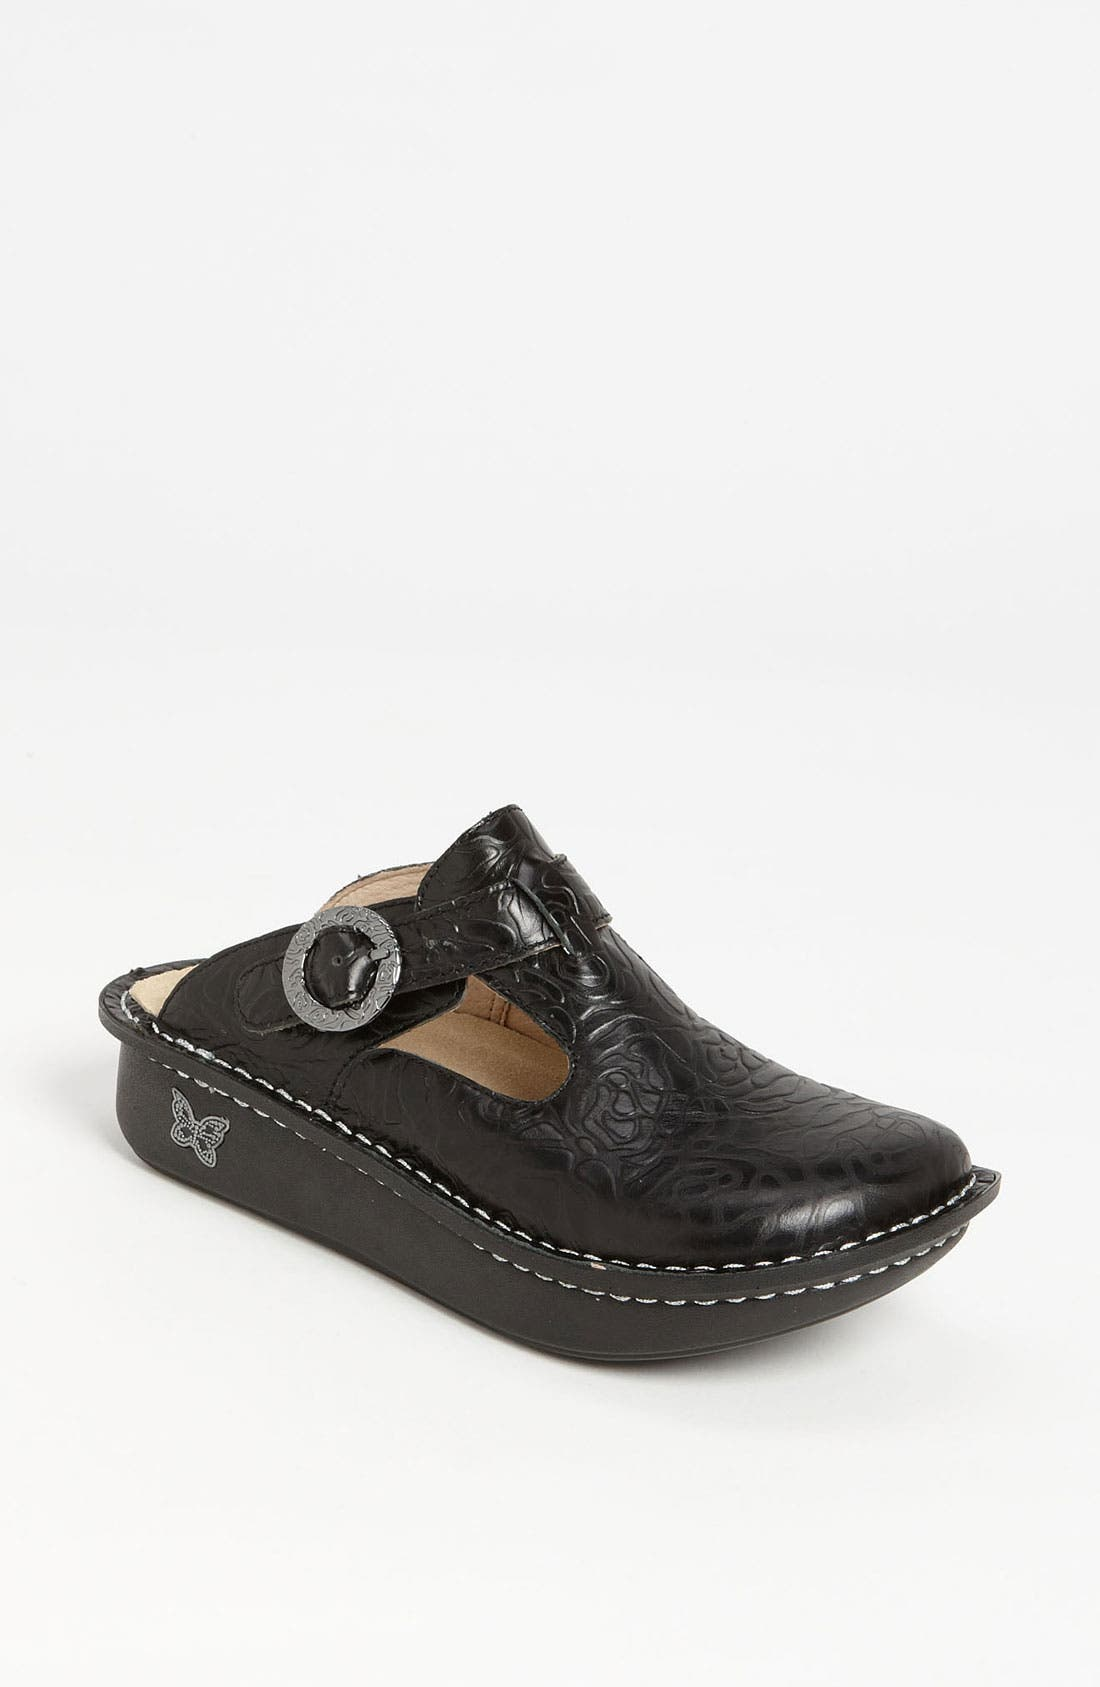 'Classic' Clog,                             Main thumbnail 1, color,                             BLACK EMBOSSED ROSE LEATHER